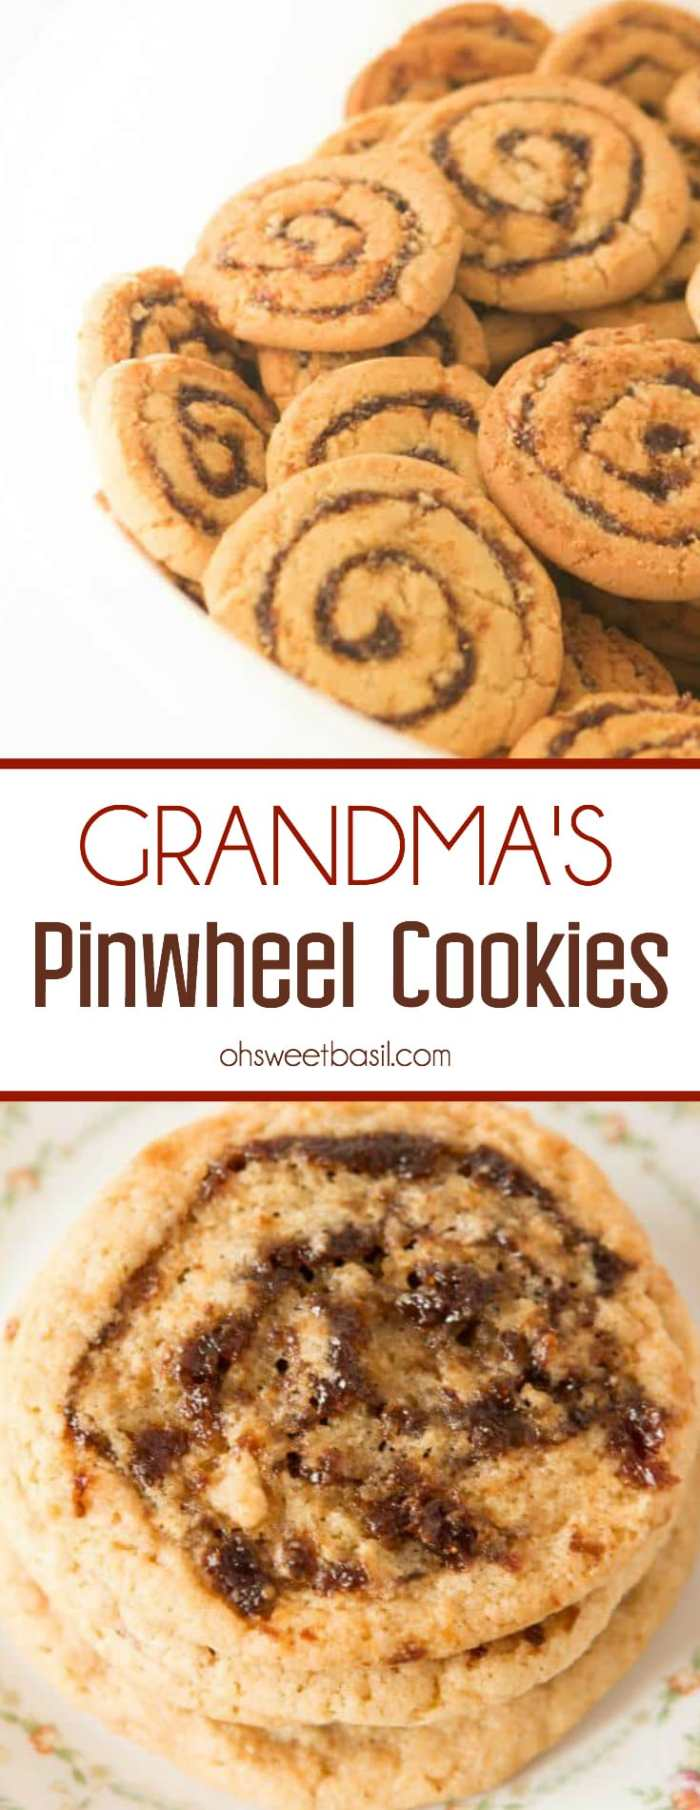 A bowl full of my grandmother's famous pinwheel cookies